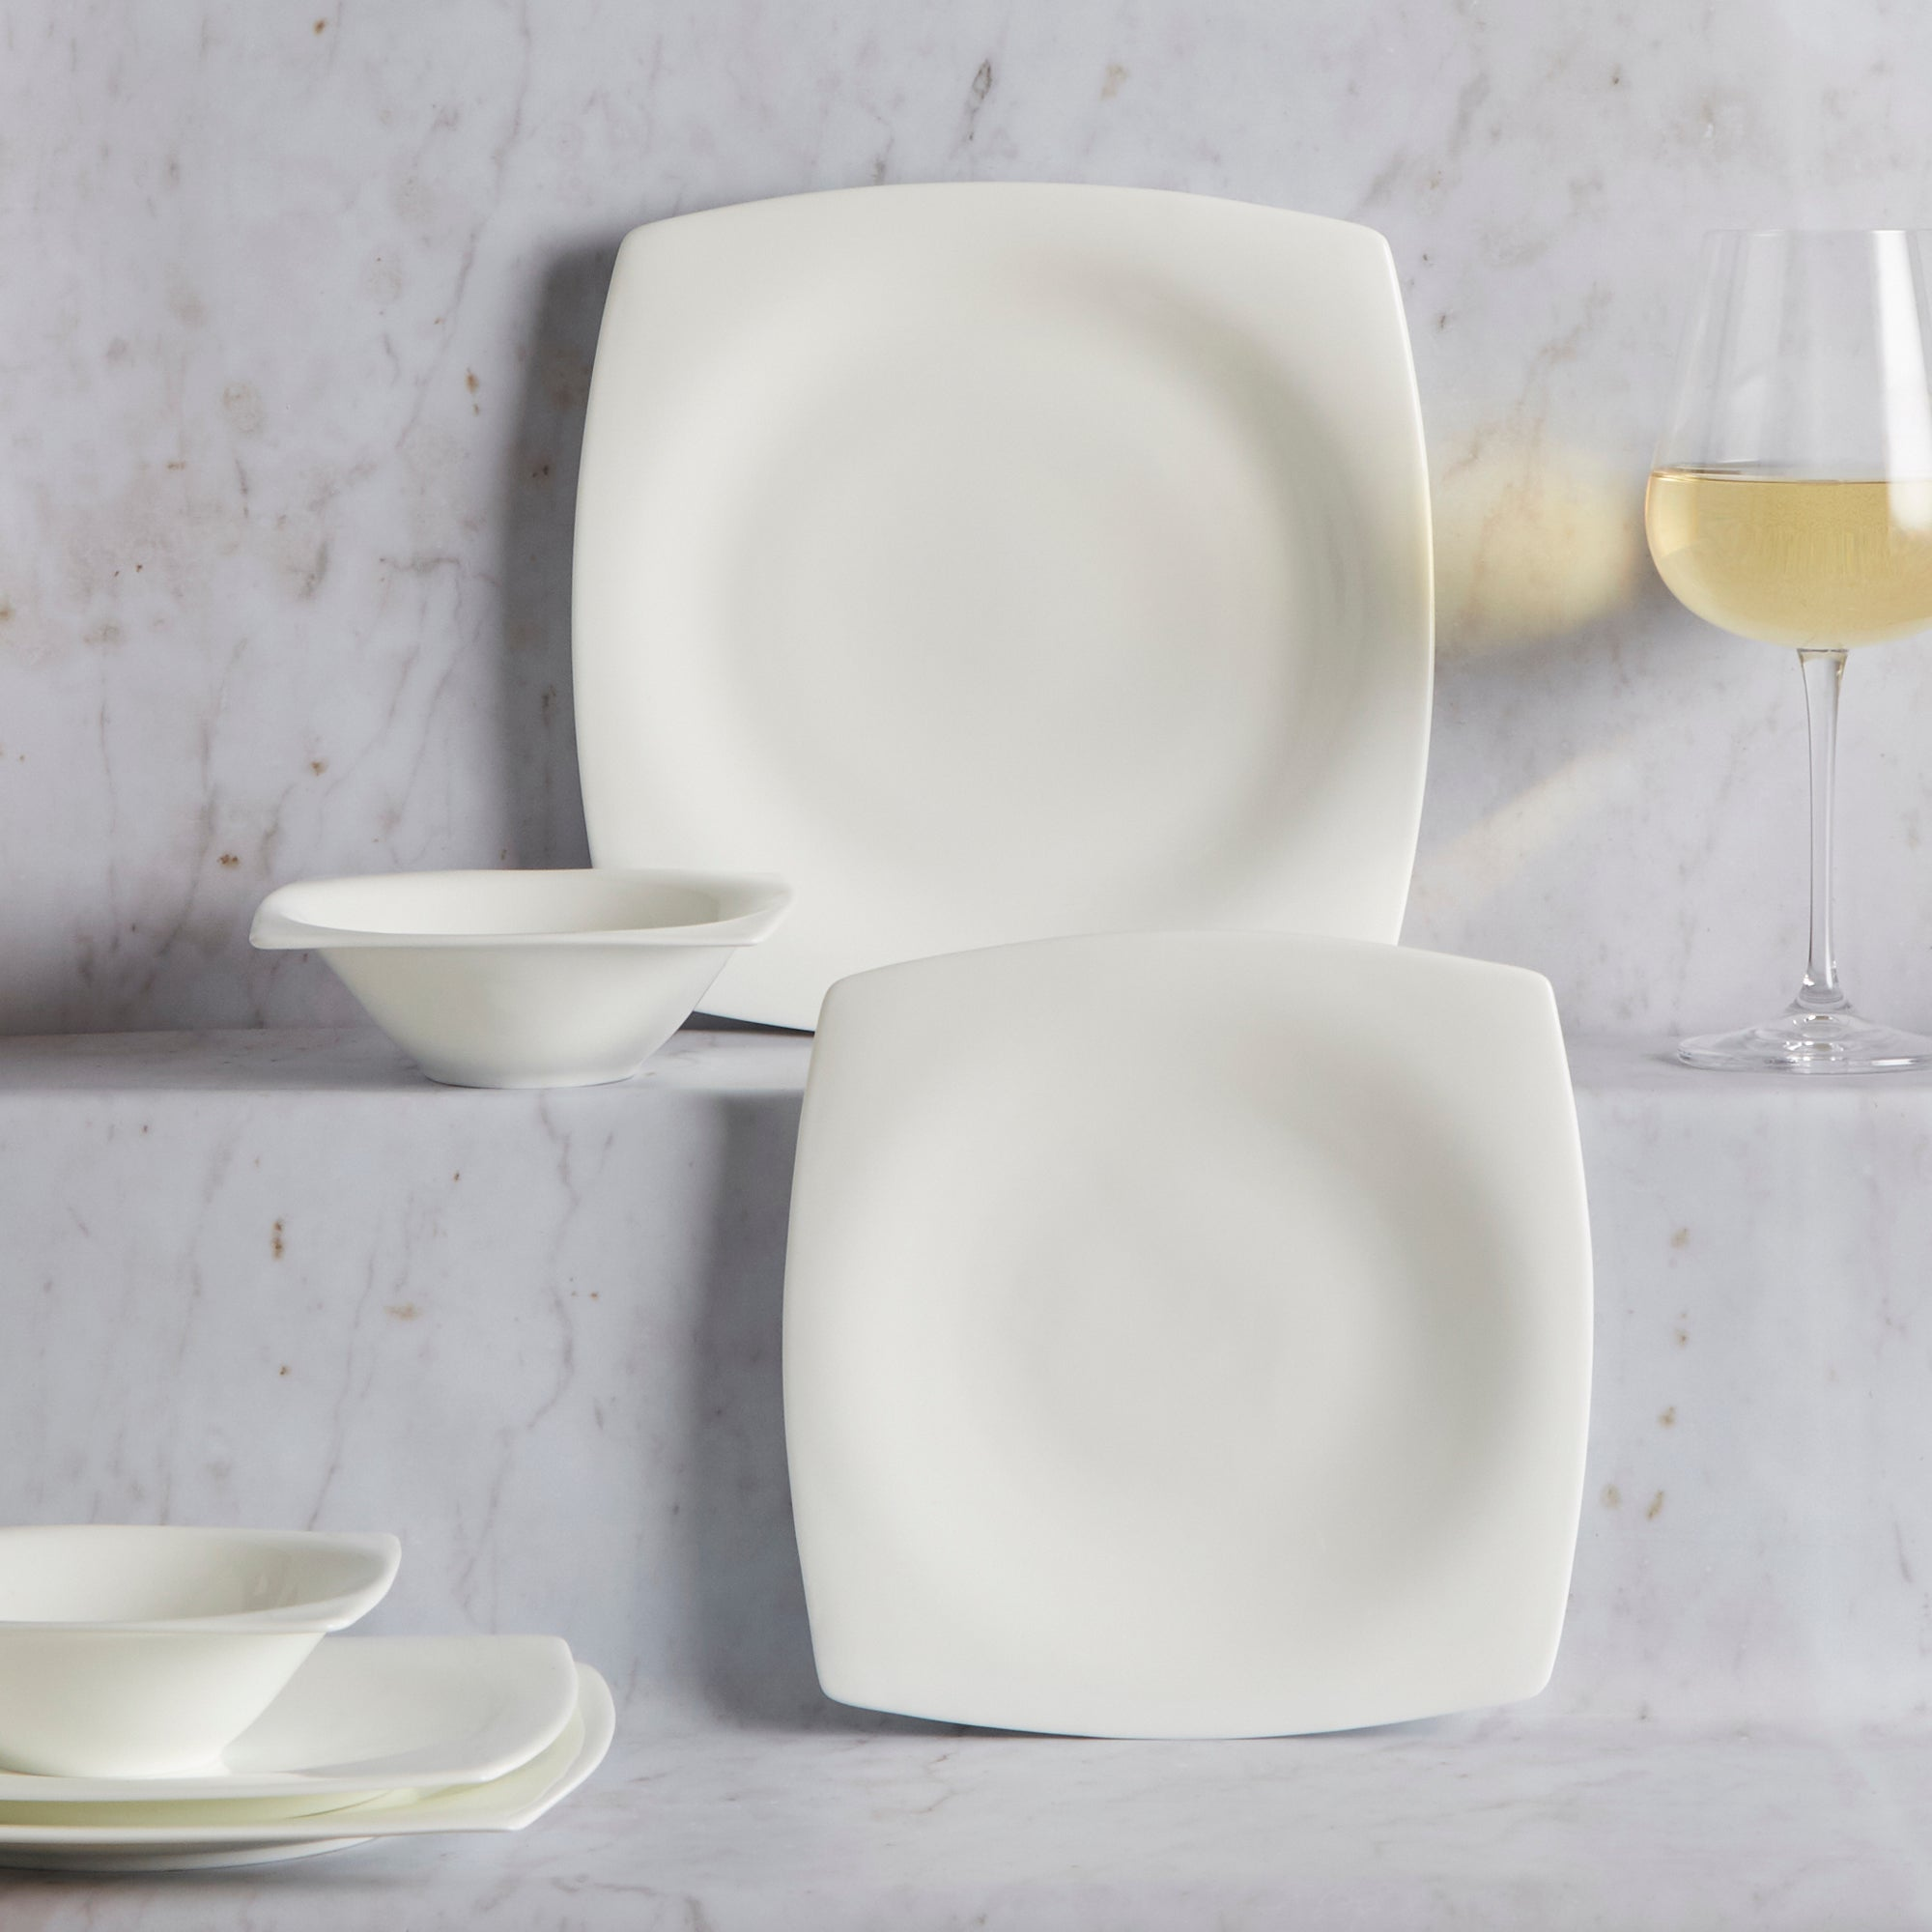 dinner set beautifully designed by luxury brand dorma this real bone